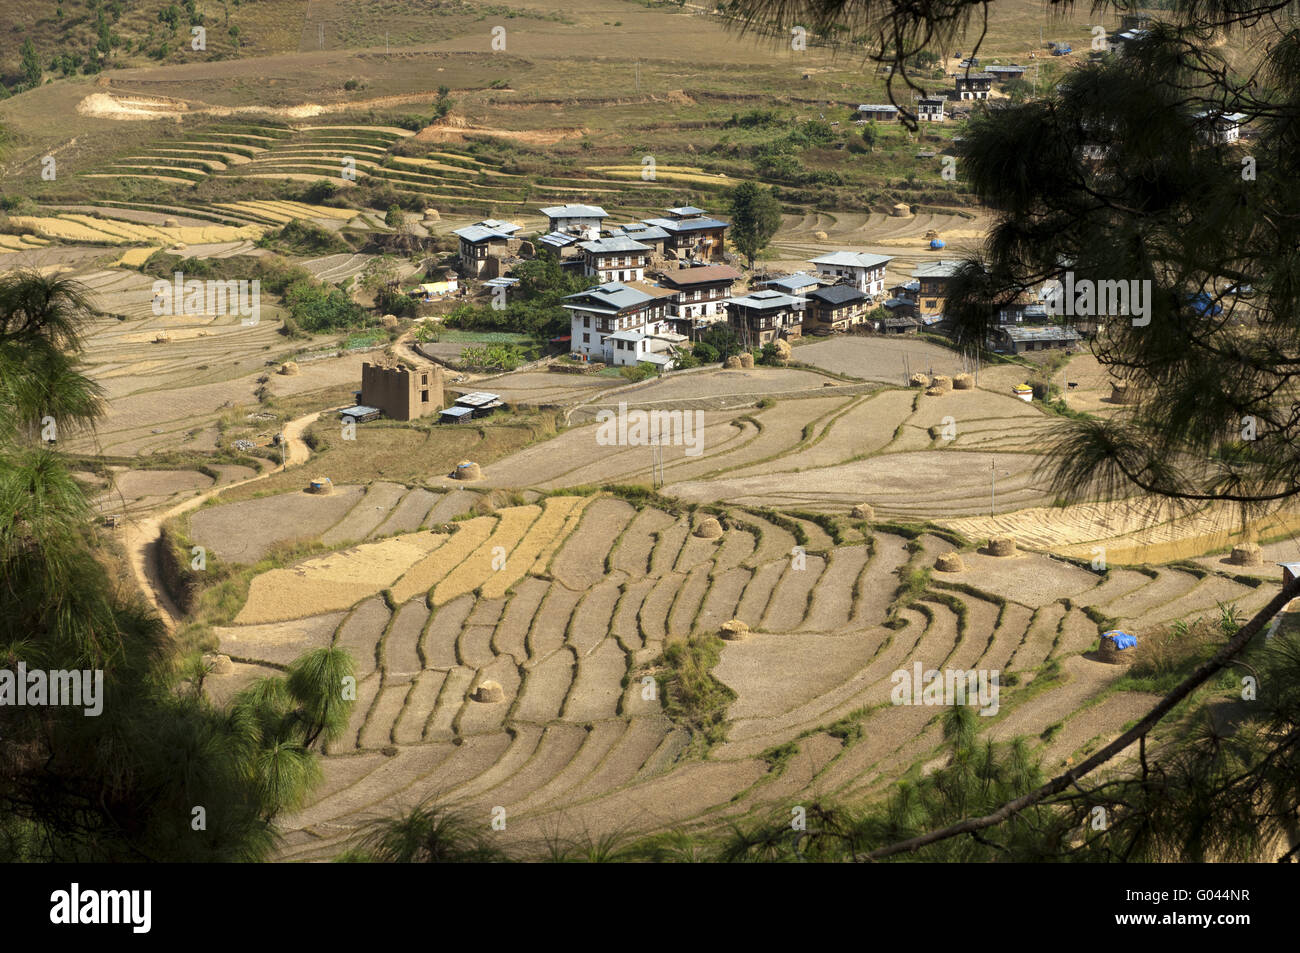 The village of Sopsokha inmidst terraced rice plot - Stock Image